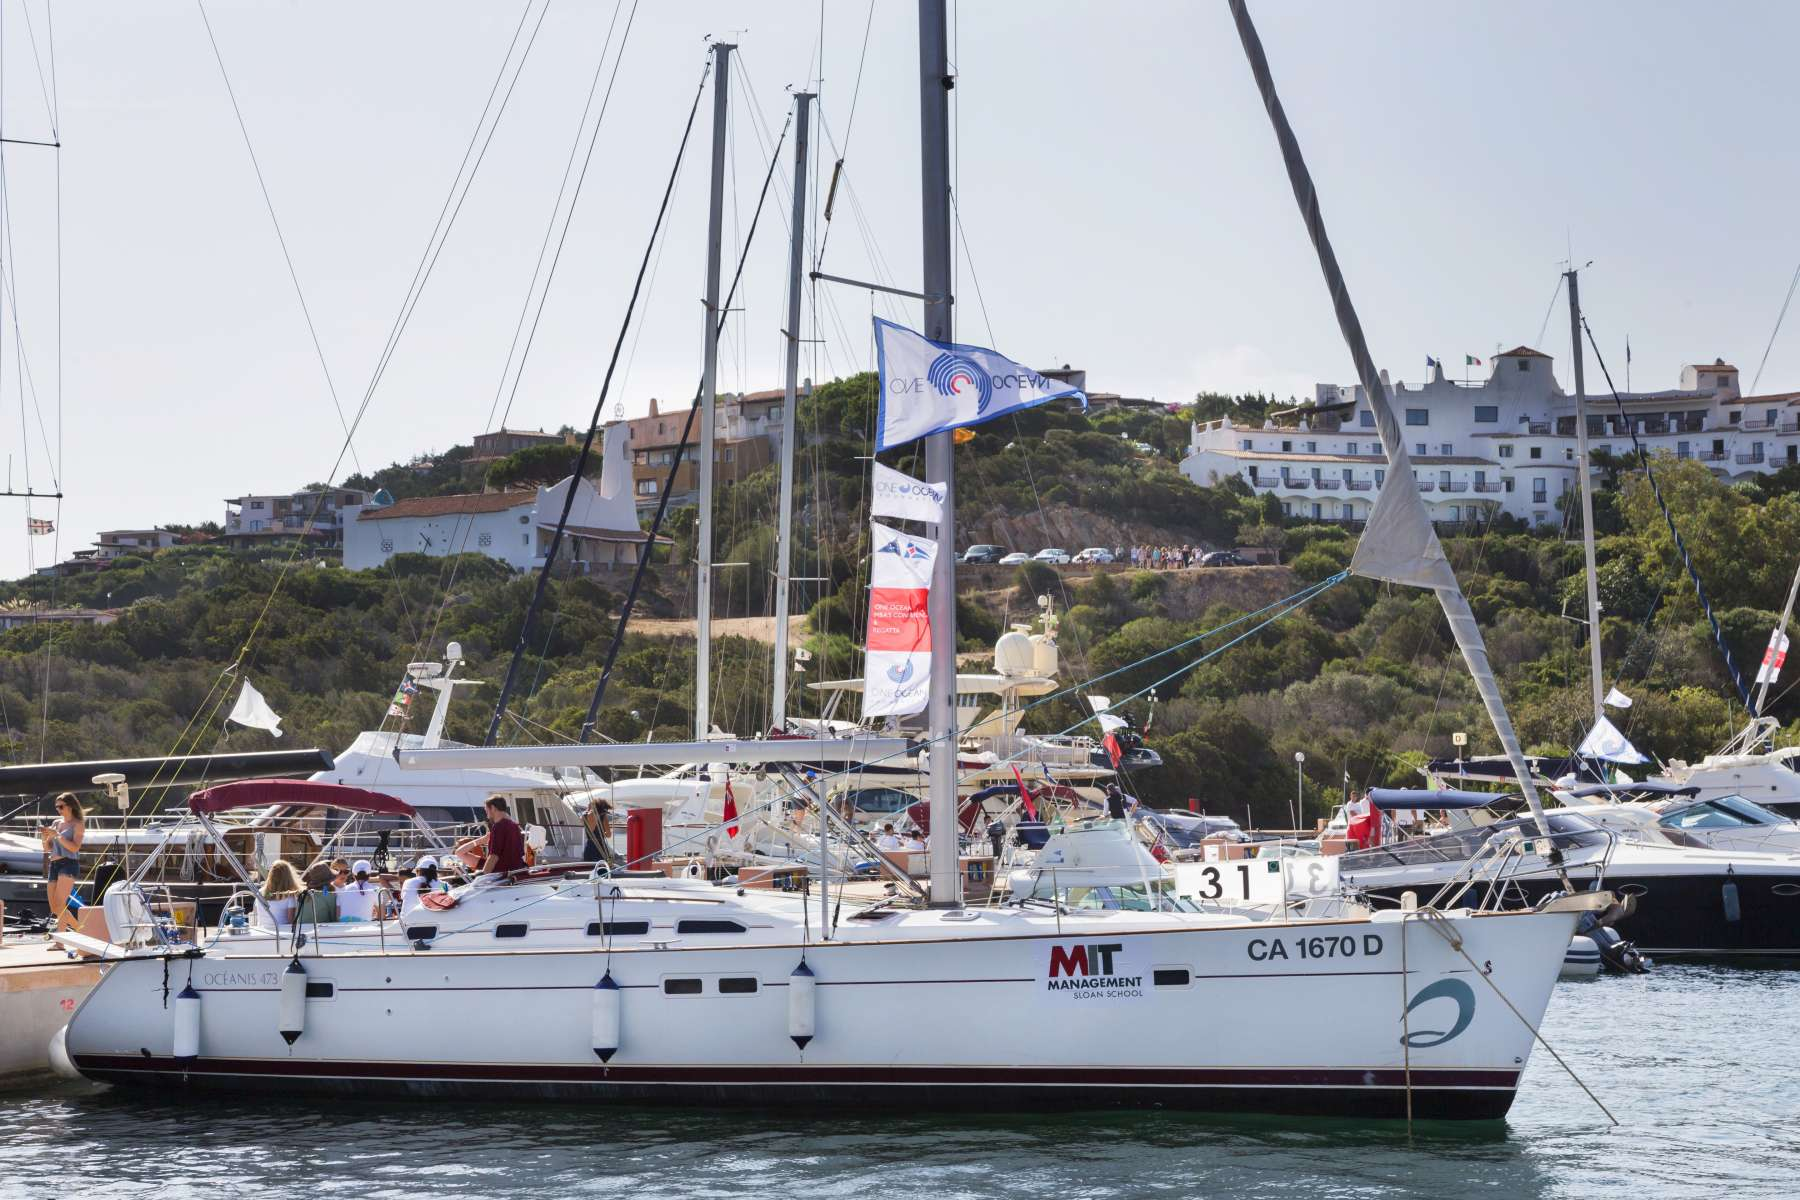 One Ocean MBA's Conference and Regatta - Porto Cervo 2019 - 10